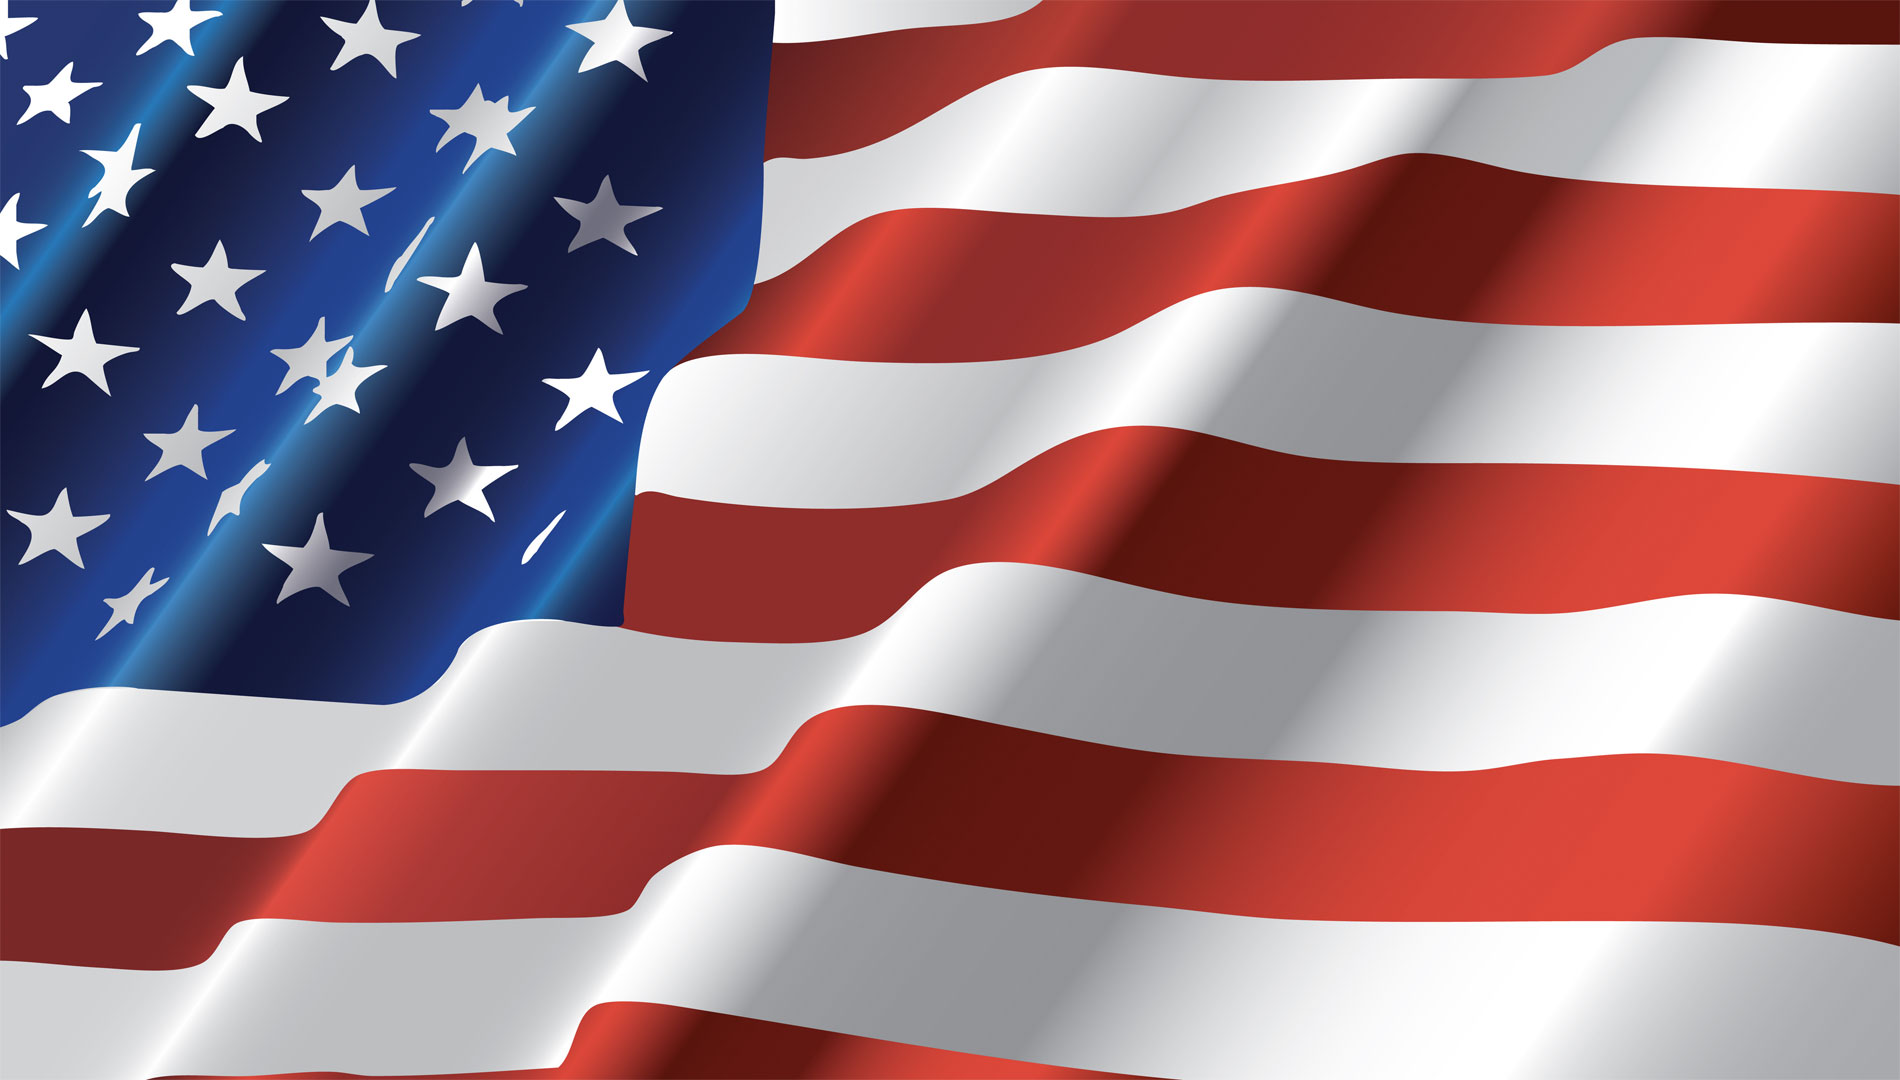 Flag Desktop Background: American Flag HD Images And Wallpapers Free Download